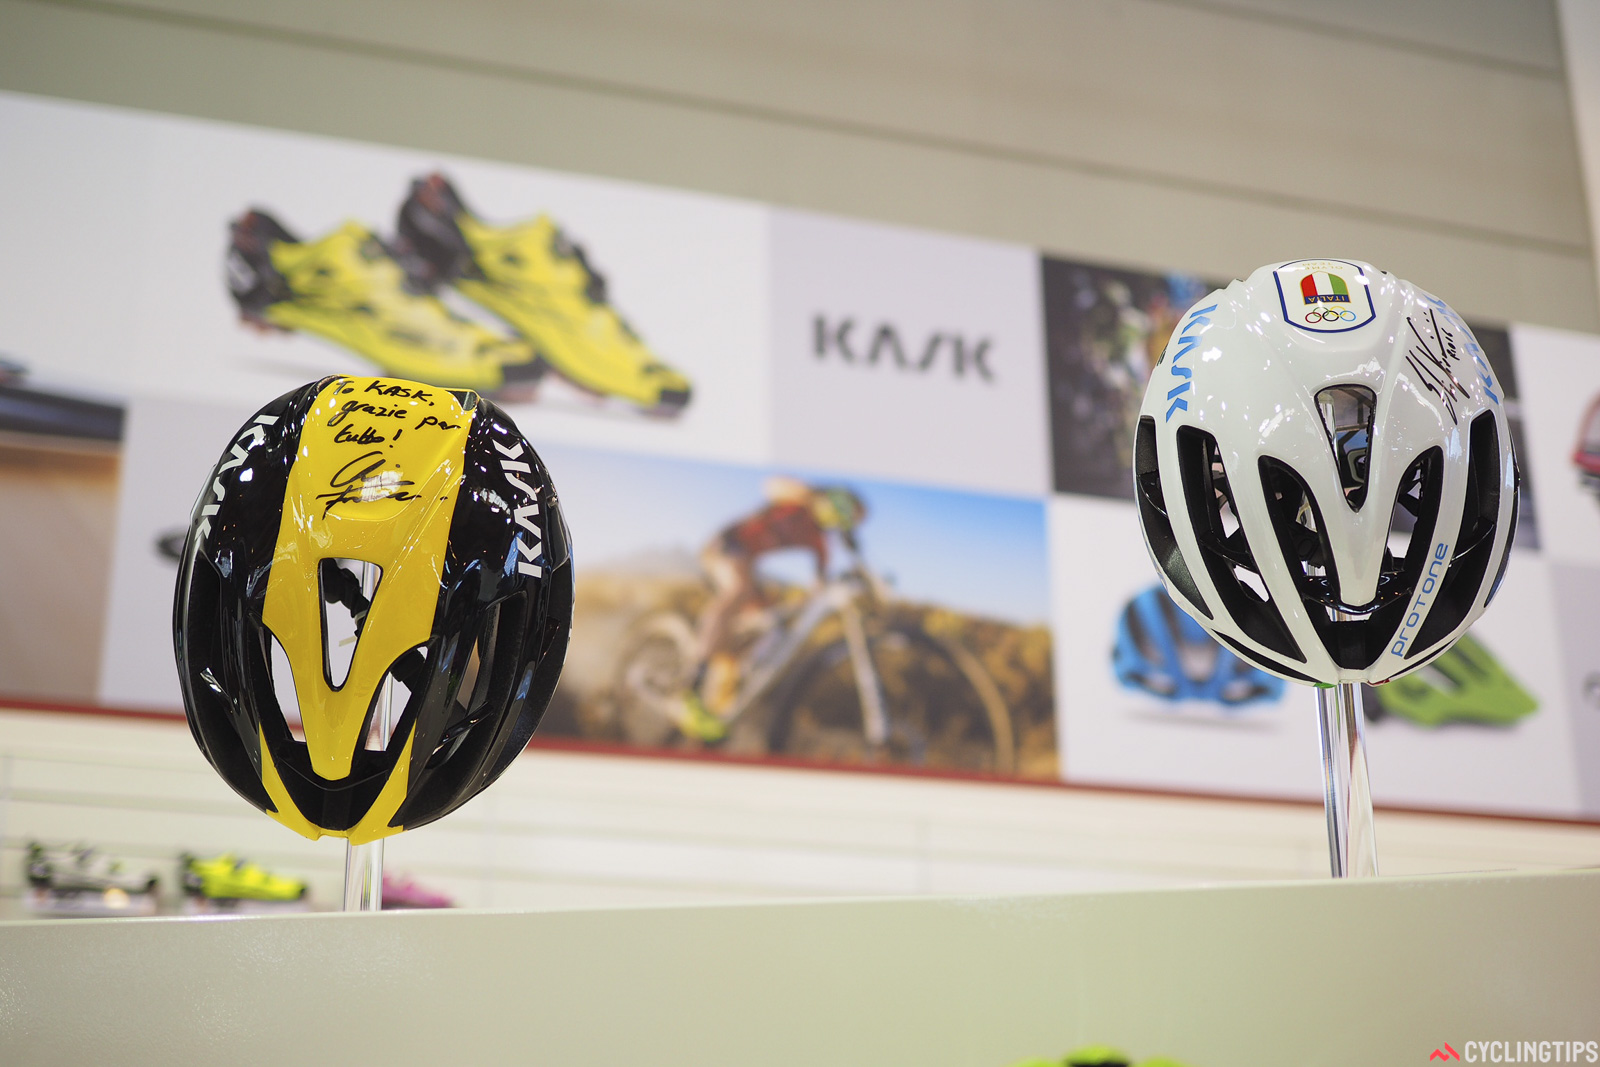 Kask has added some major feathers to its company cap this year, with Chris Froome winning the Tour de France in July, and Elia Viviani claiming the Olympic gold medal in the men's omnium. Photo: James Huang.